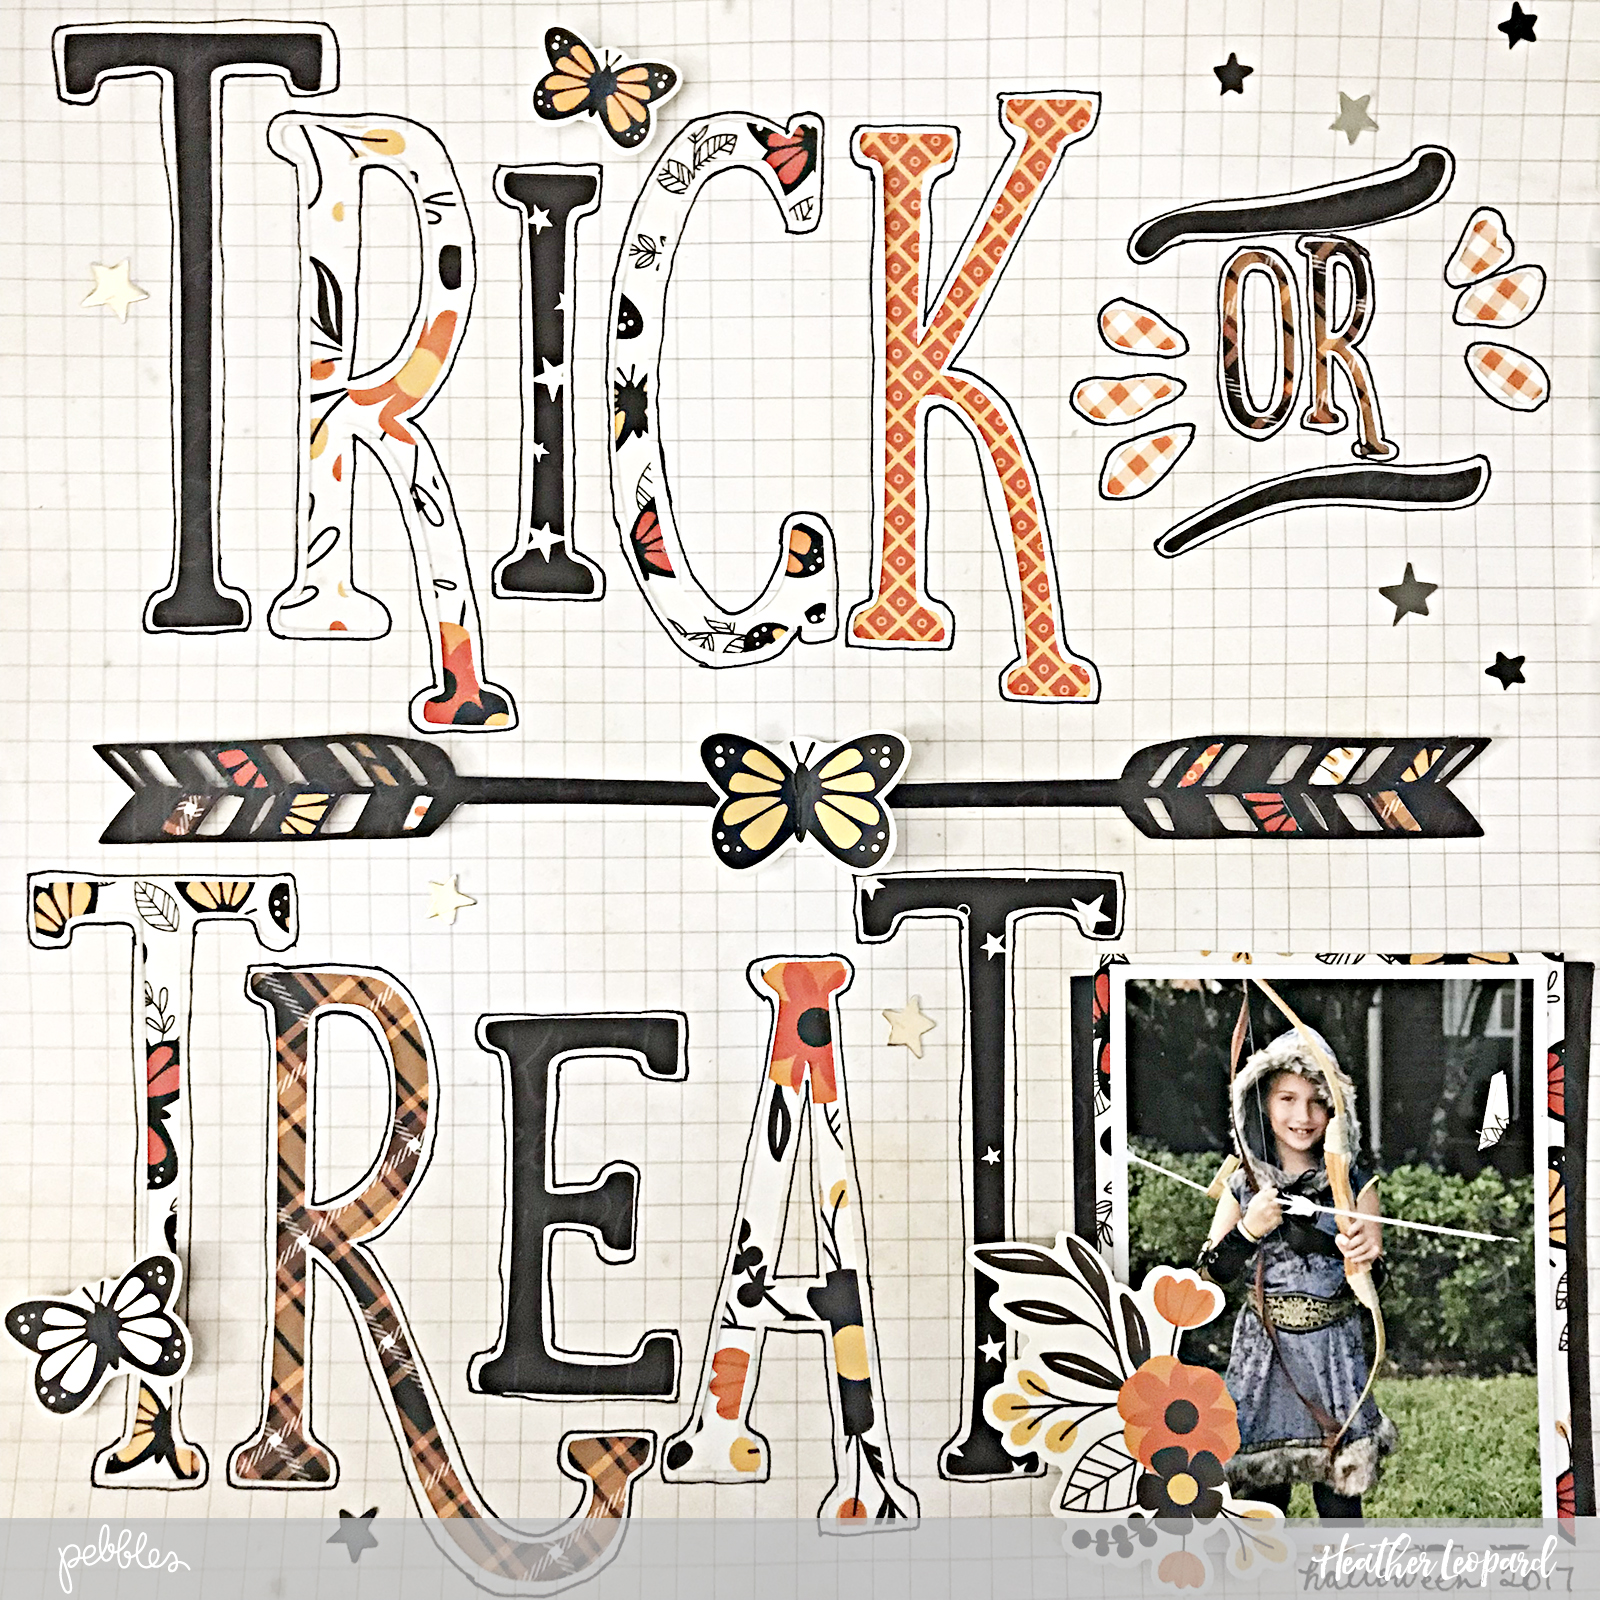 Trick or Treat Scrapbooking Layout by @HeatherLeopard using @pebblesinc #MidnightHaunting collection #Halloween #scrapbooking #scrapbook #trickortreat